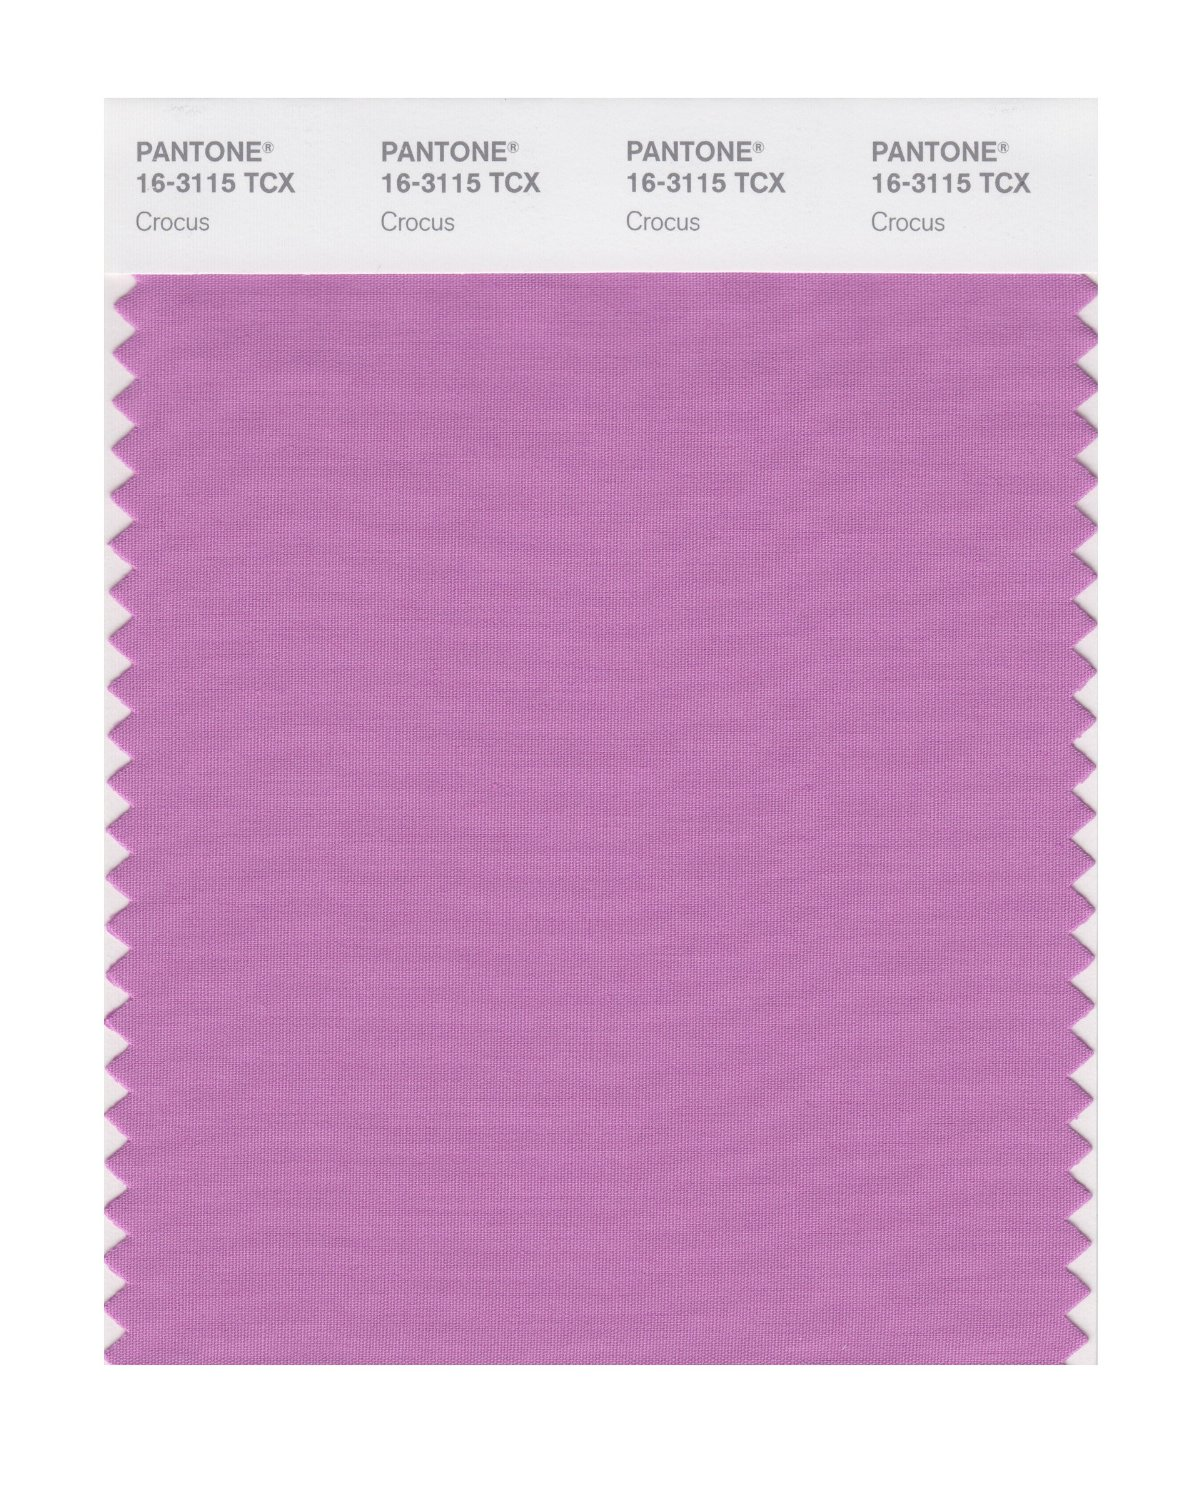 Pantone Smart Swatch 16-3115 Crocus